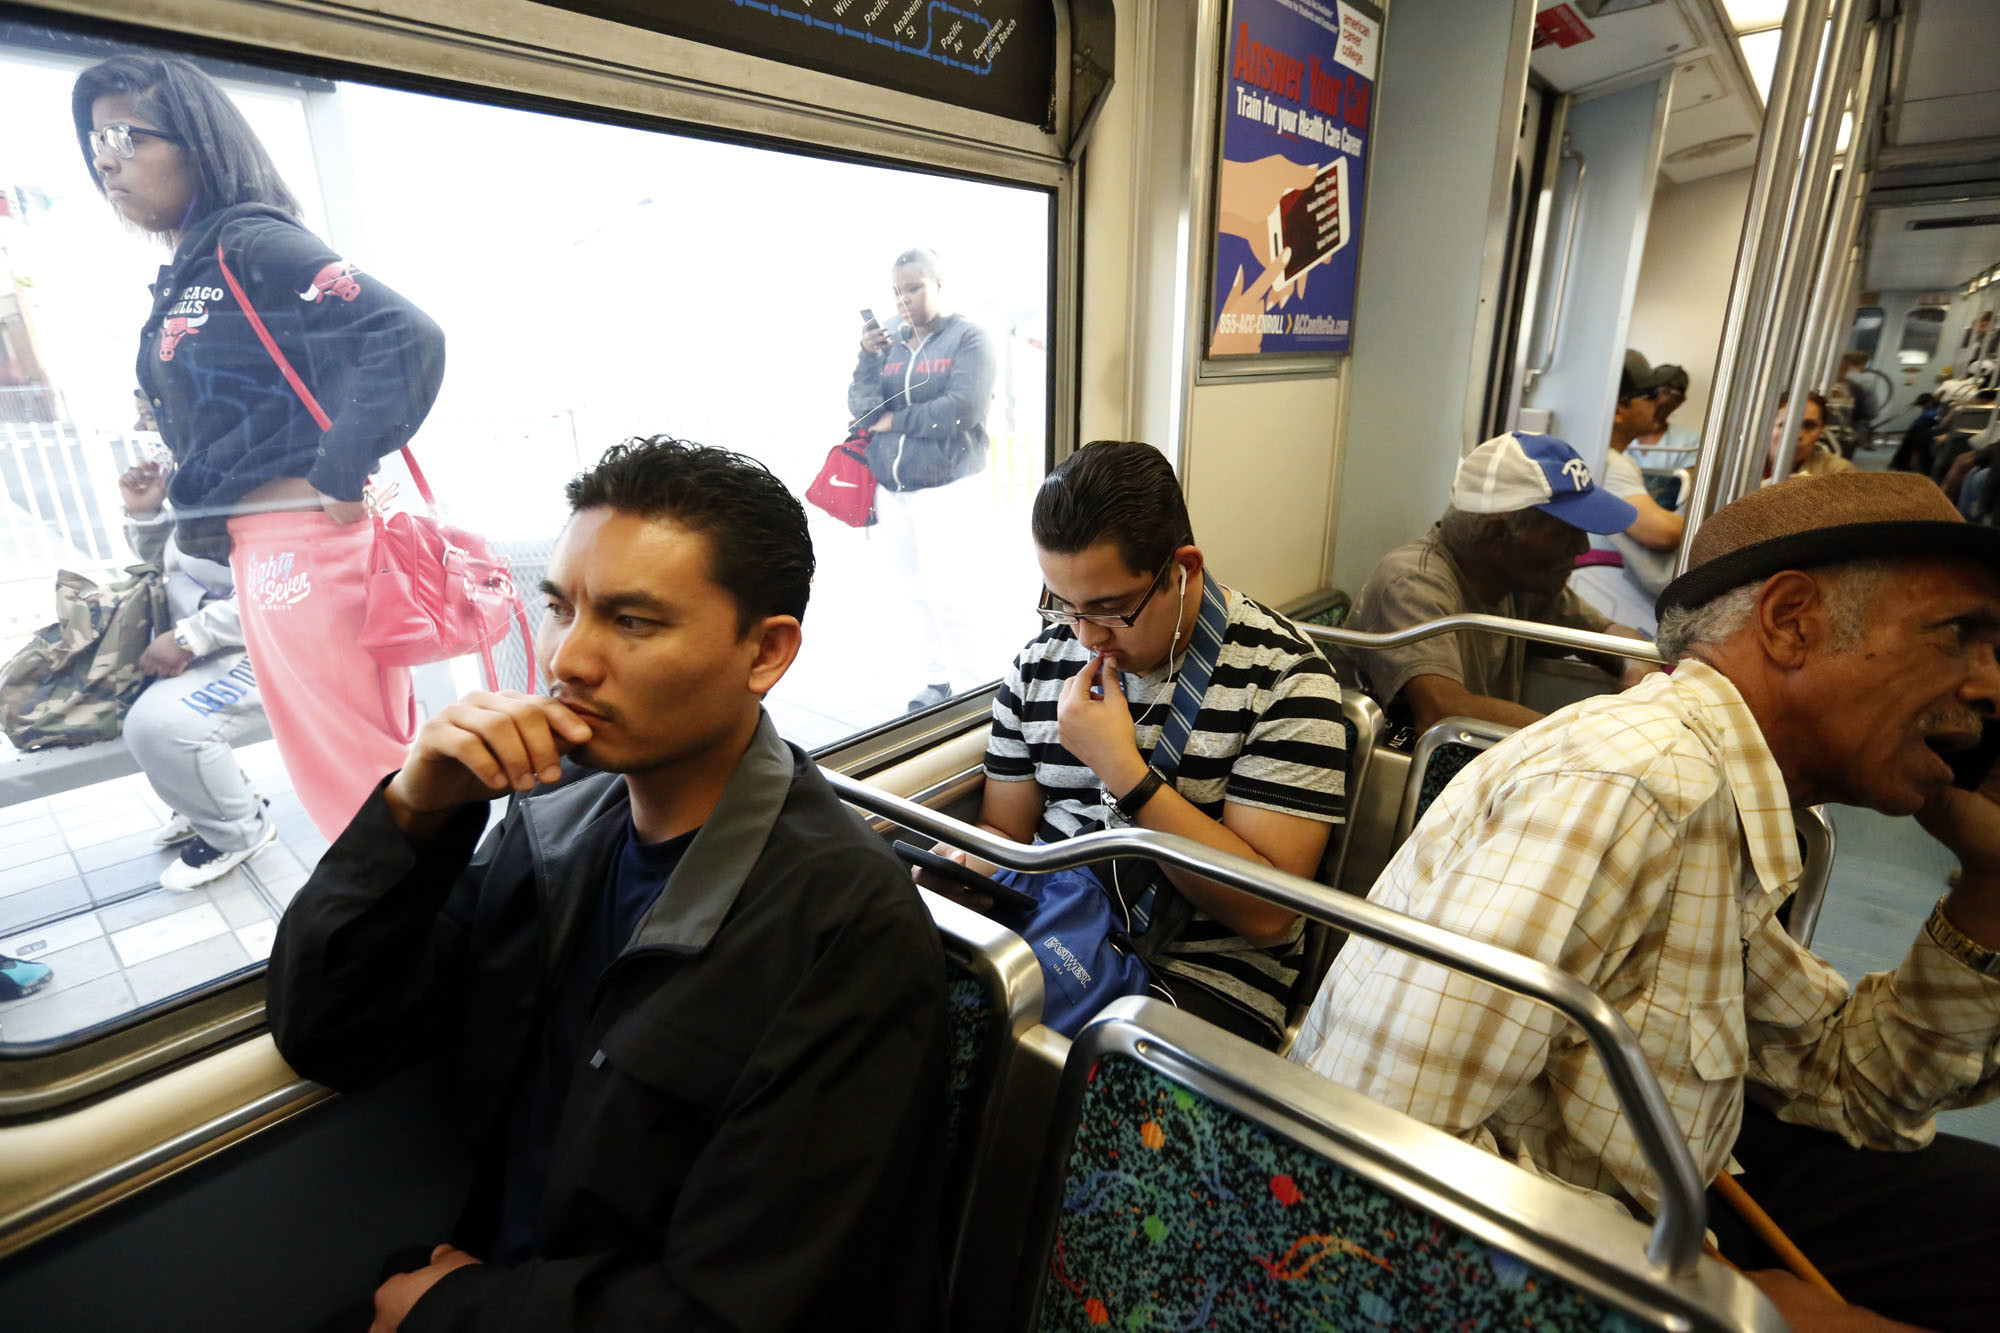 Phal Sok, 35, left, rides the Metro Blue Line train in Los Angeles to visit with his brother in Long Beach.